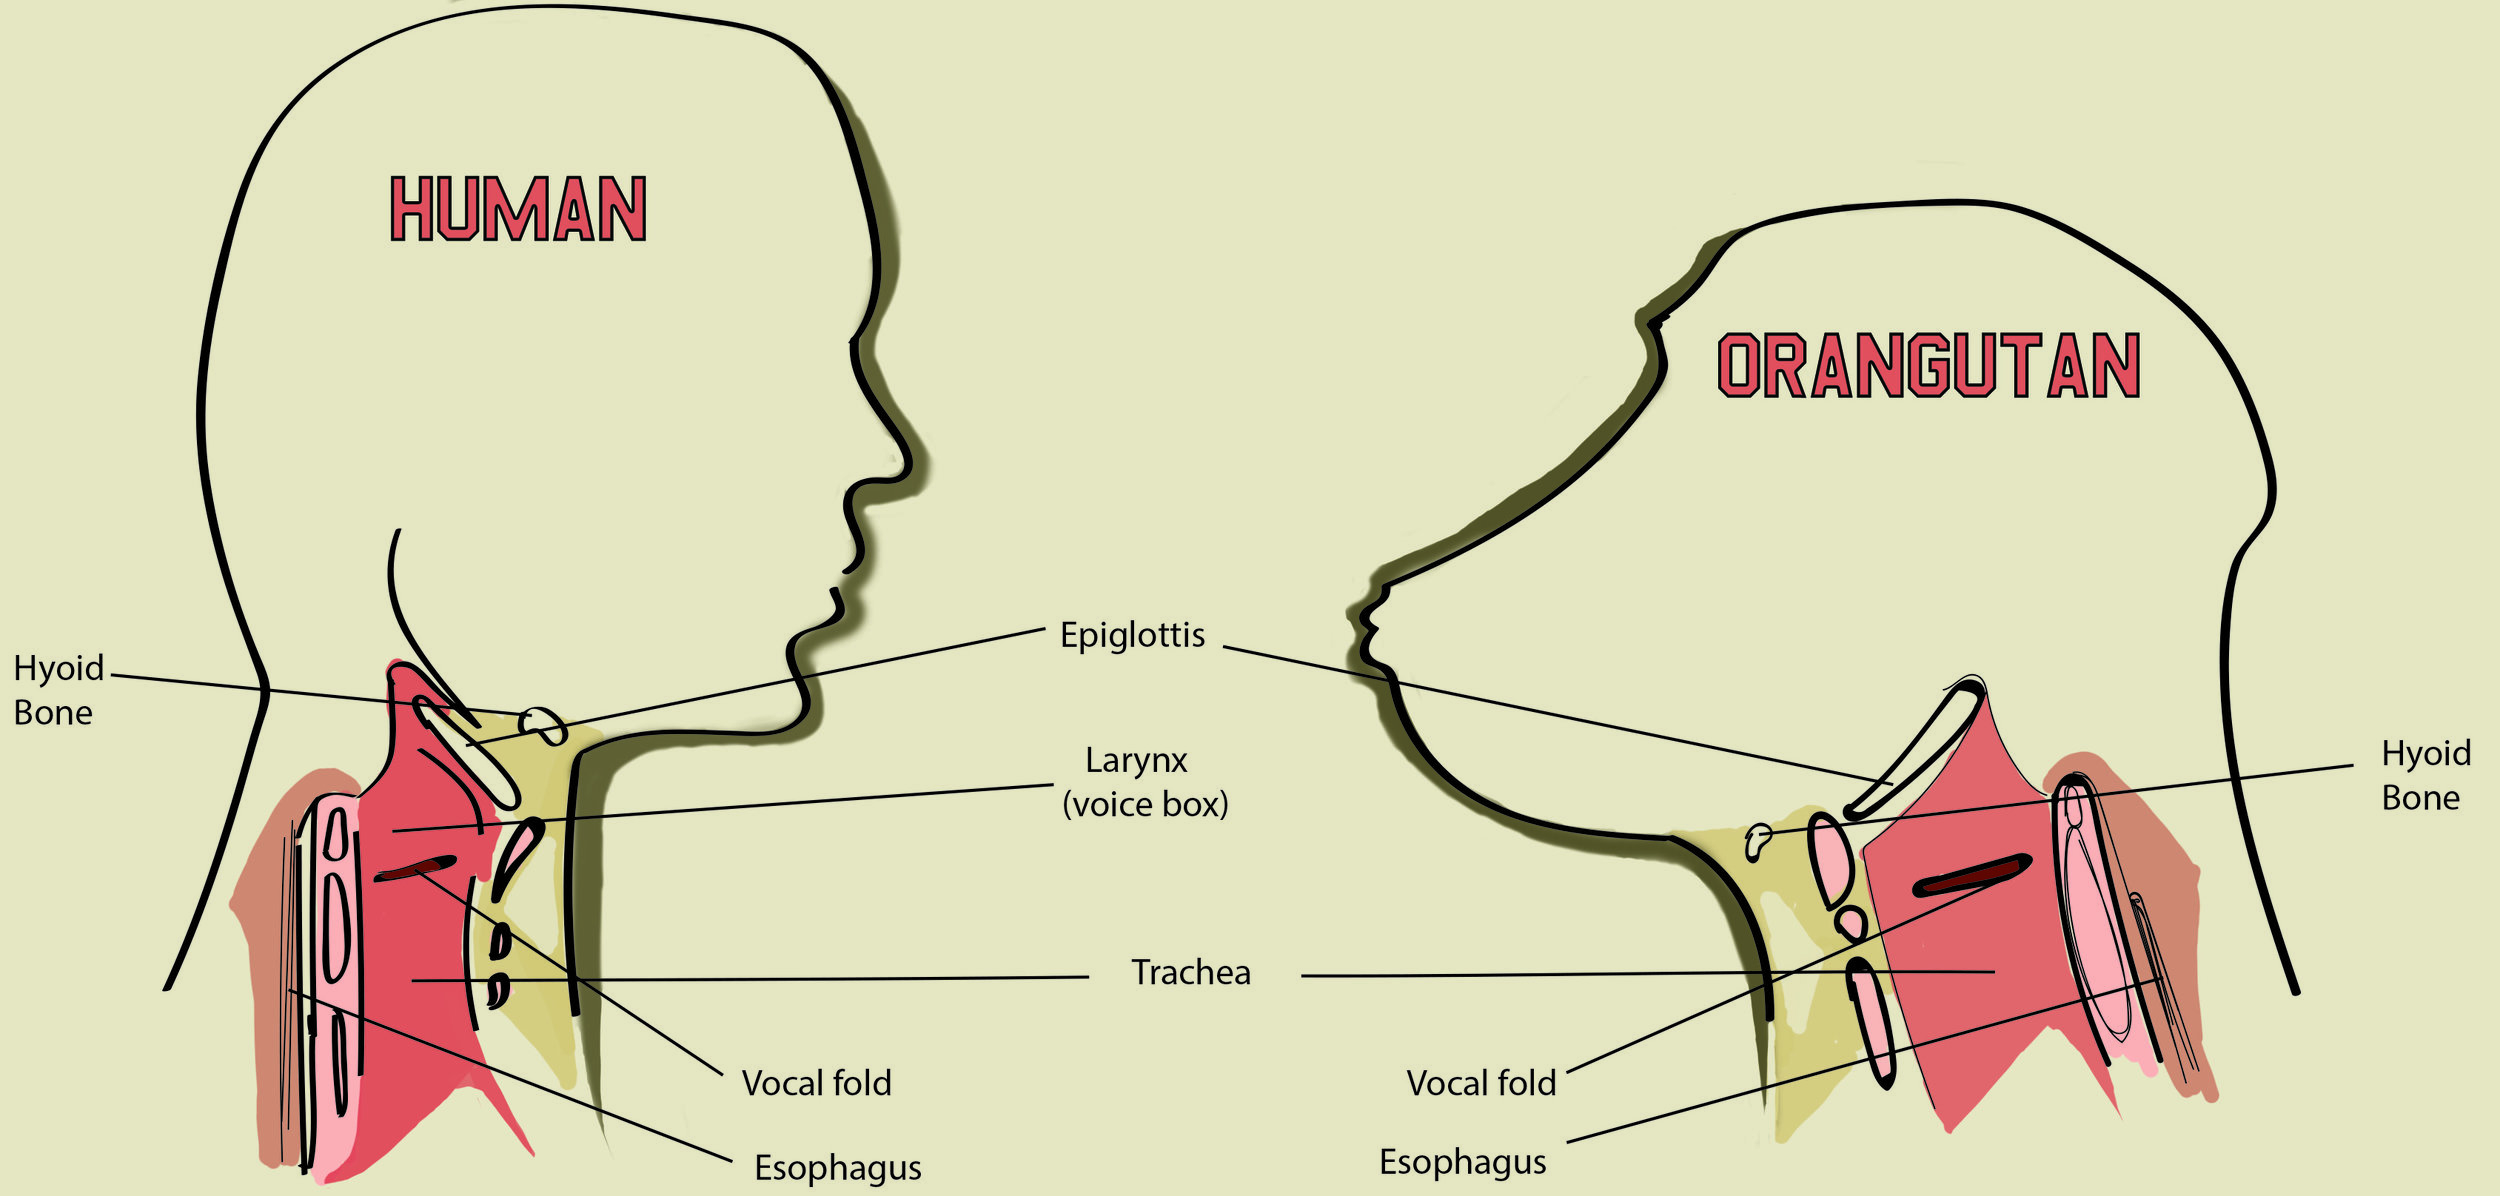 Illustration graphic comparing the vocal cords of Humans and Orangutans.